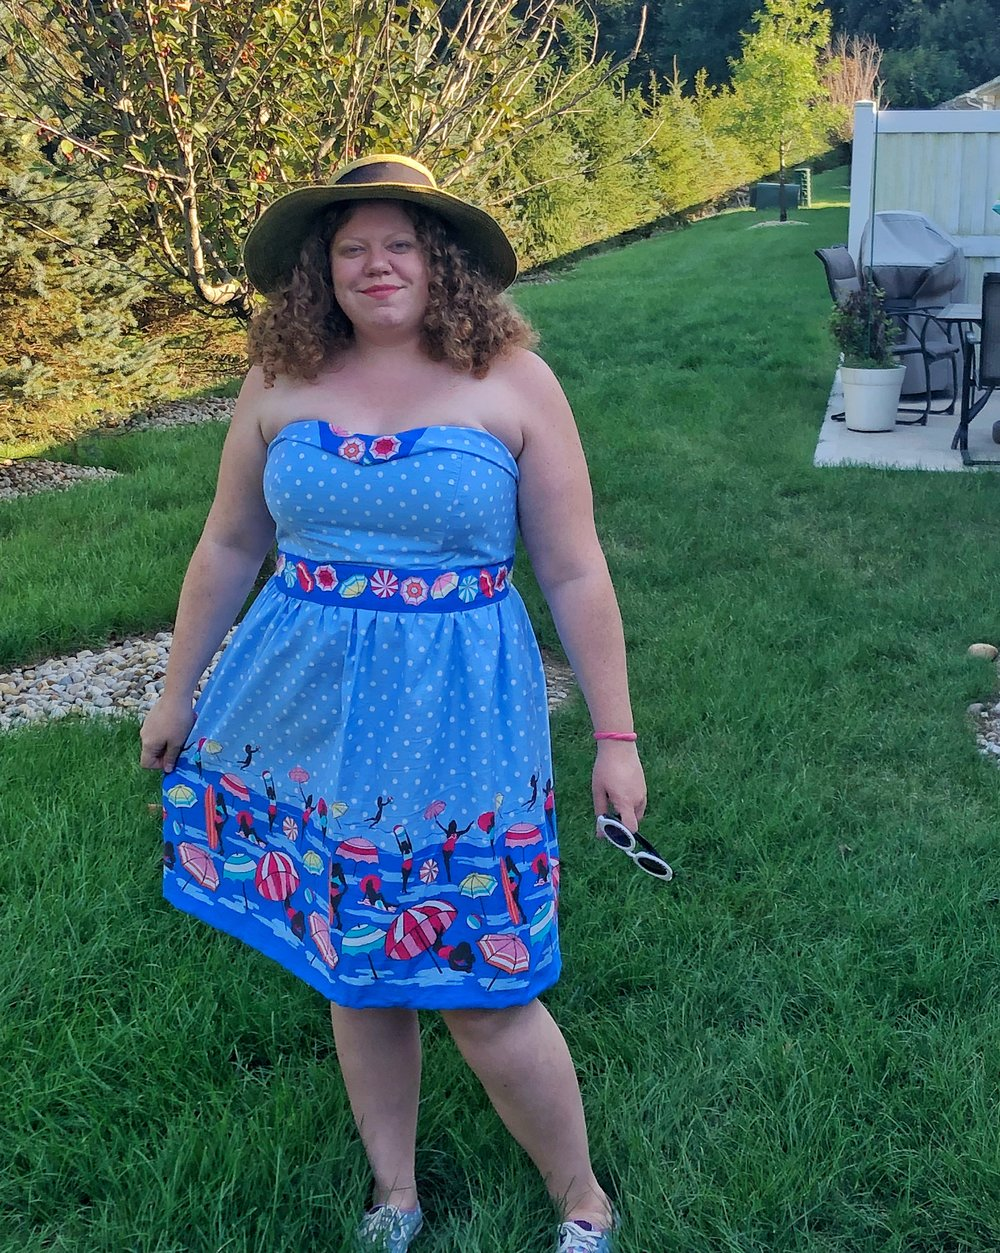 Woman with curly auburn hair standing outside with a sun hat on wearing a blue polka dot dress with pinups in swimsuits printed on it